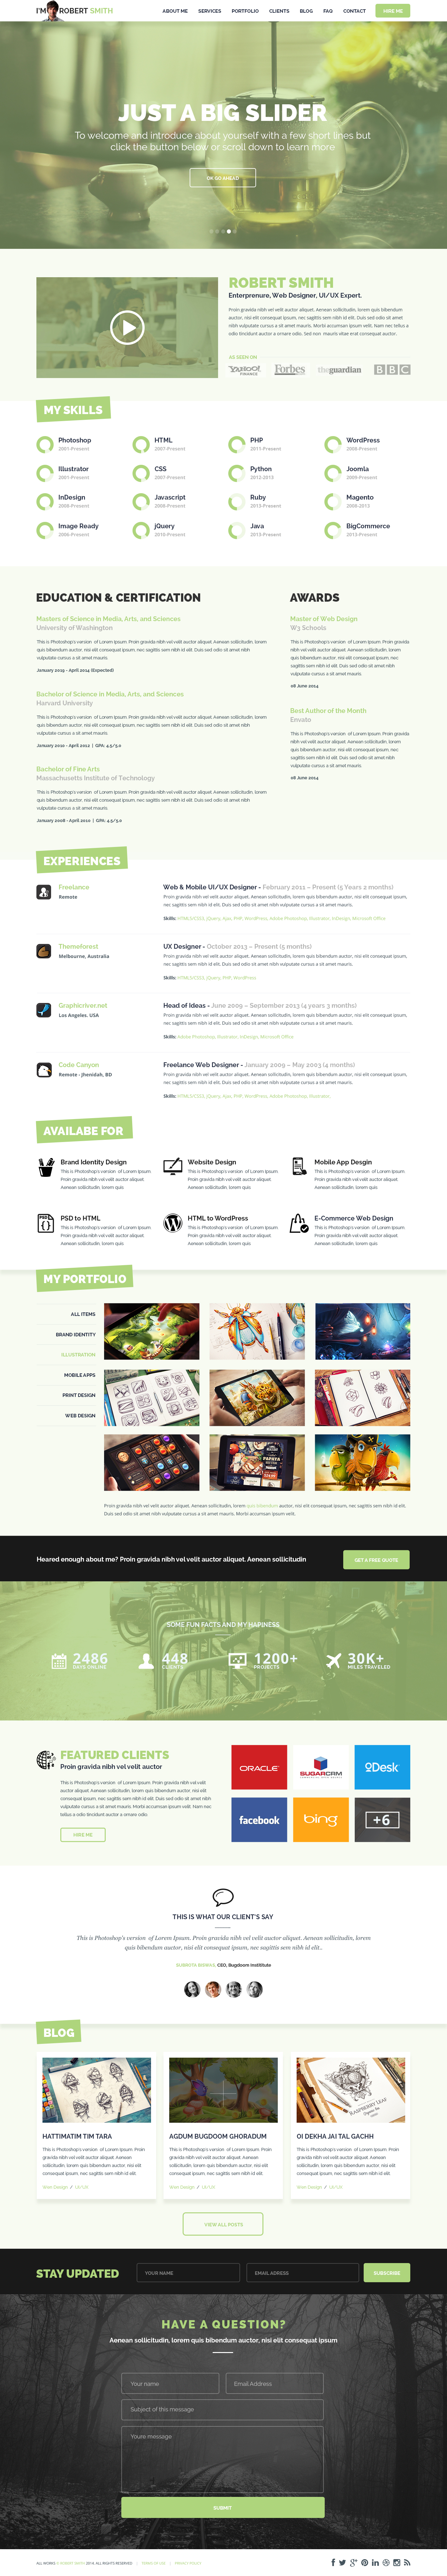 awesome ideas web resume 4 20 creative resume website templates to